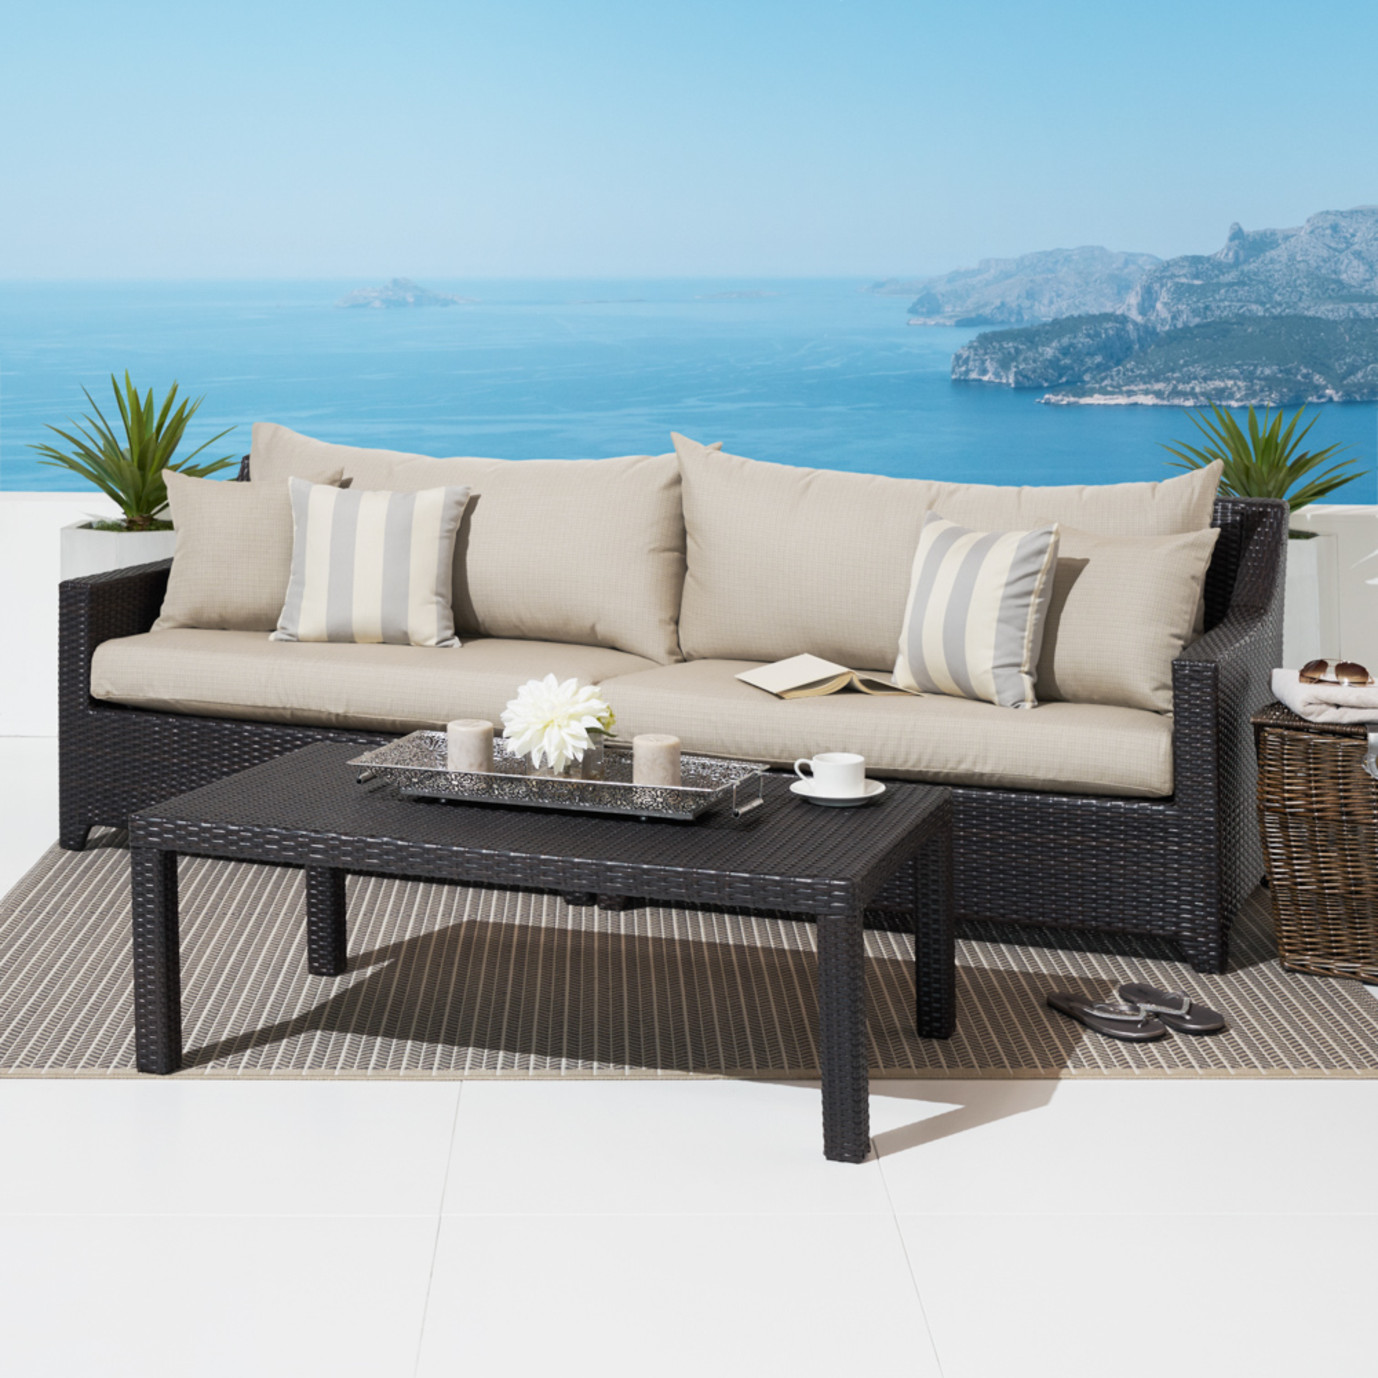 Deco Sofa With Coffee Table Slate Grey Rst Brands